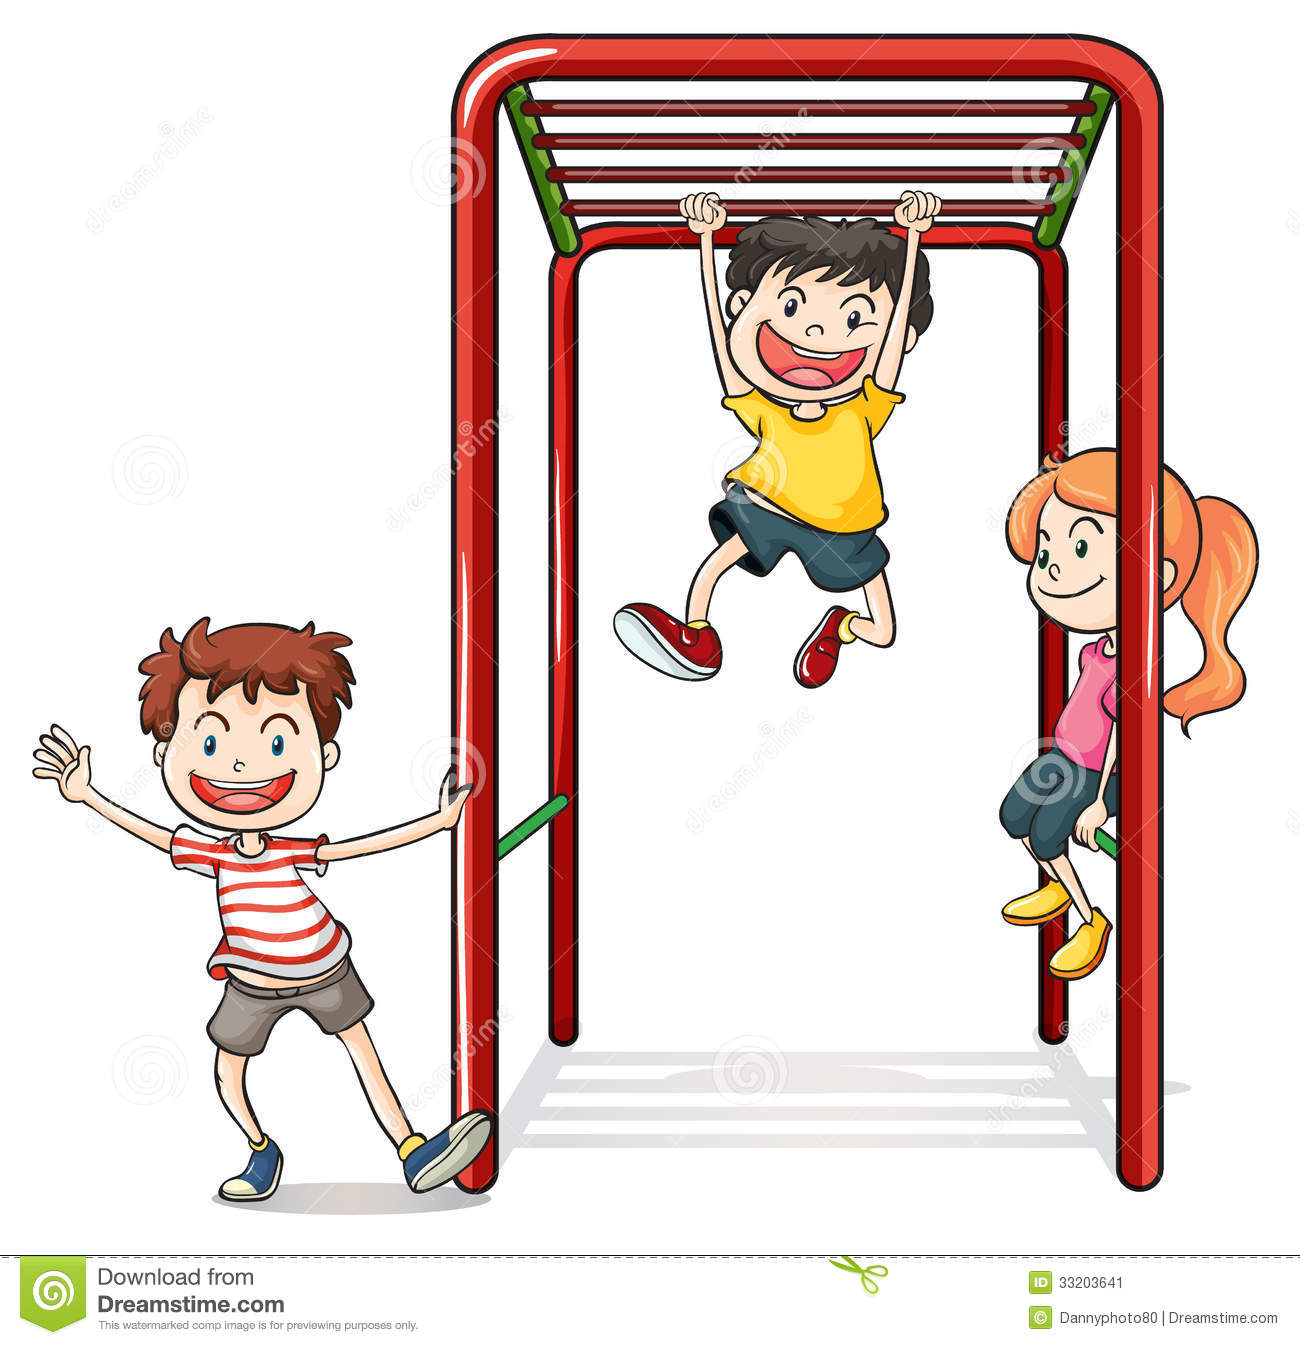 Illustration of kids playing with a monkey bars on a white background.